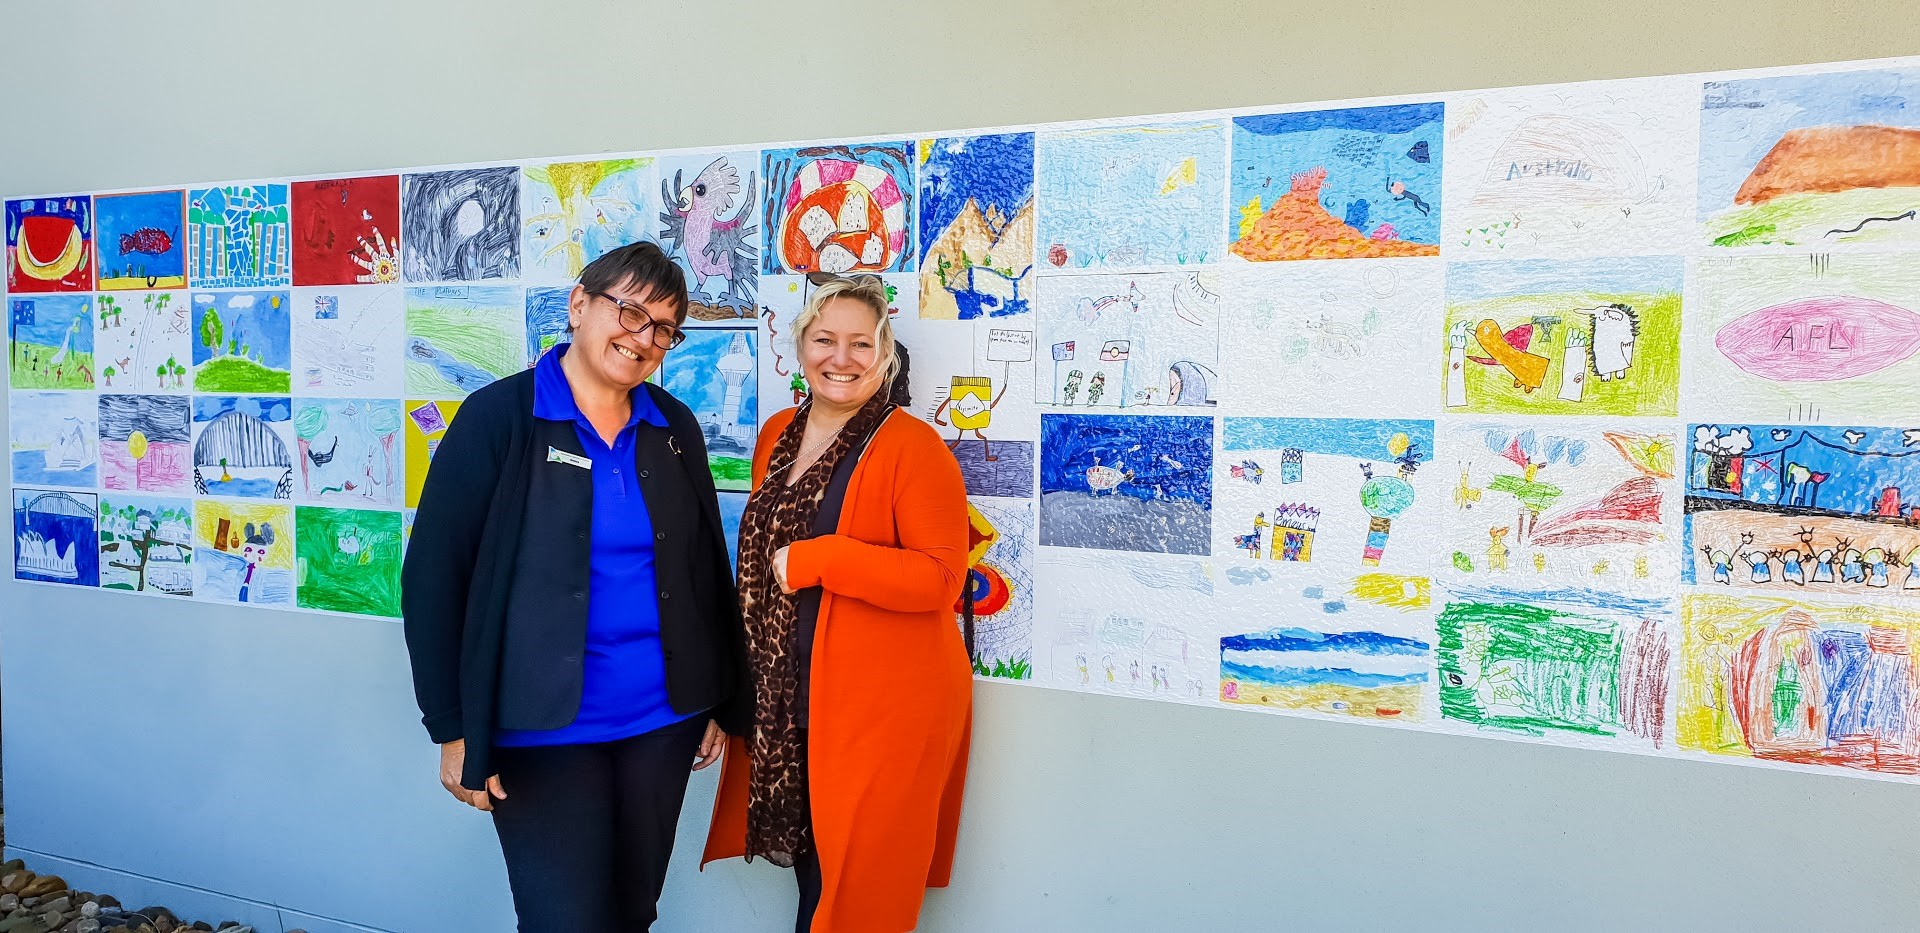 Pop up public artwork displays creativity of region's primary students